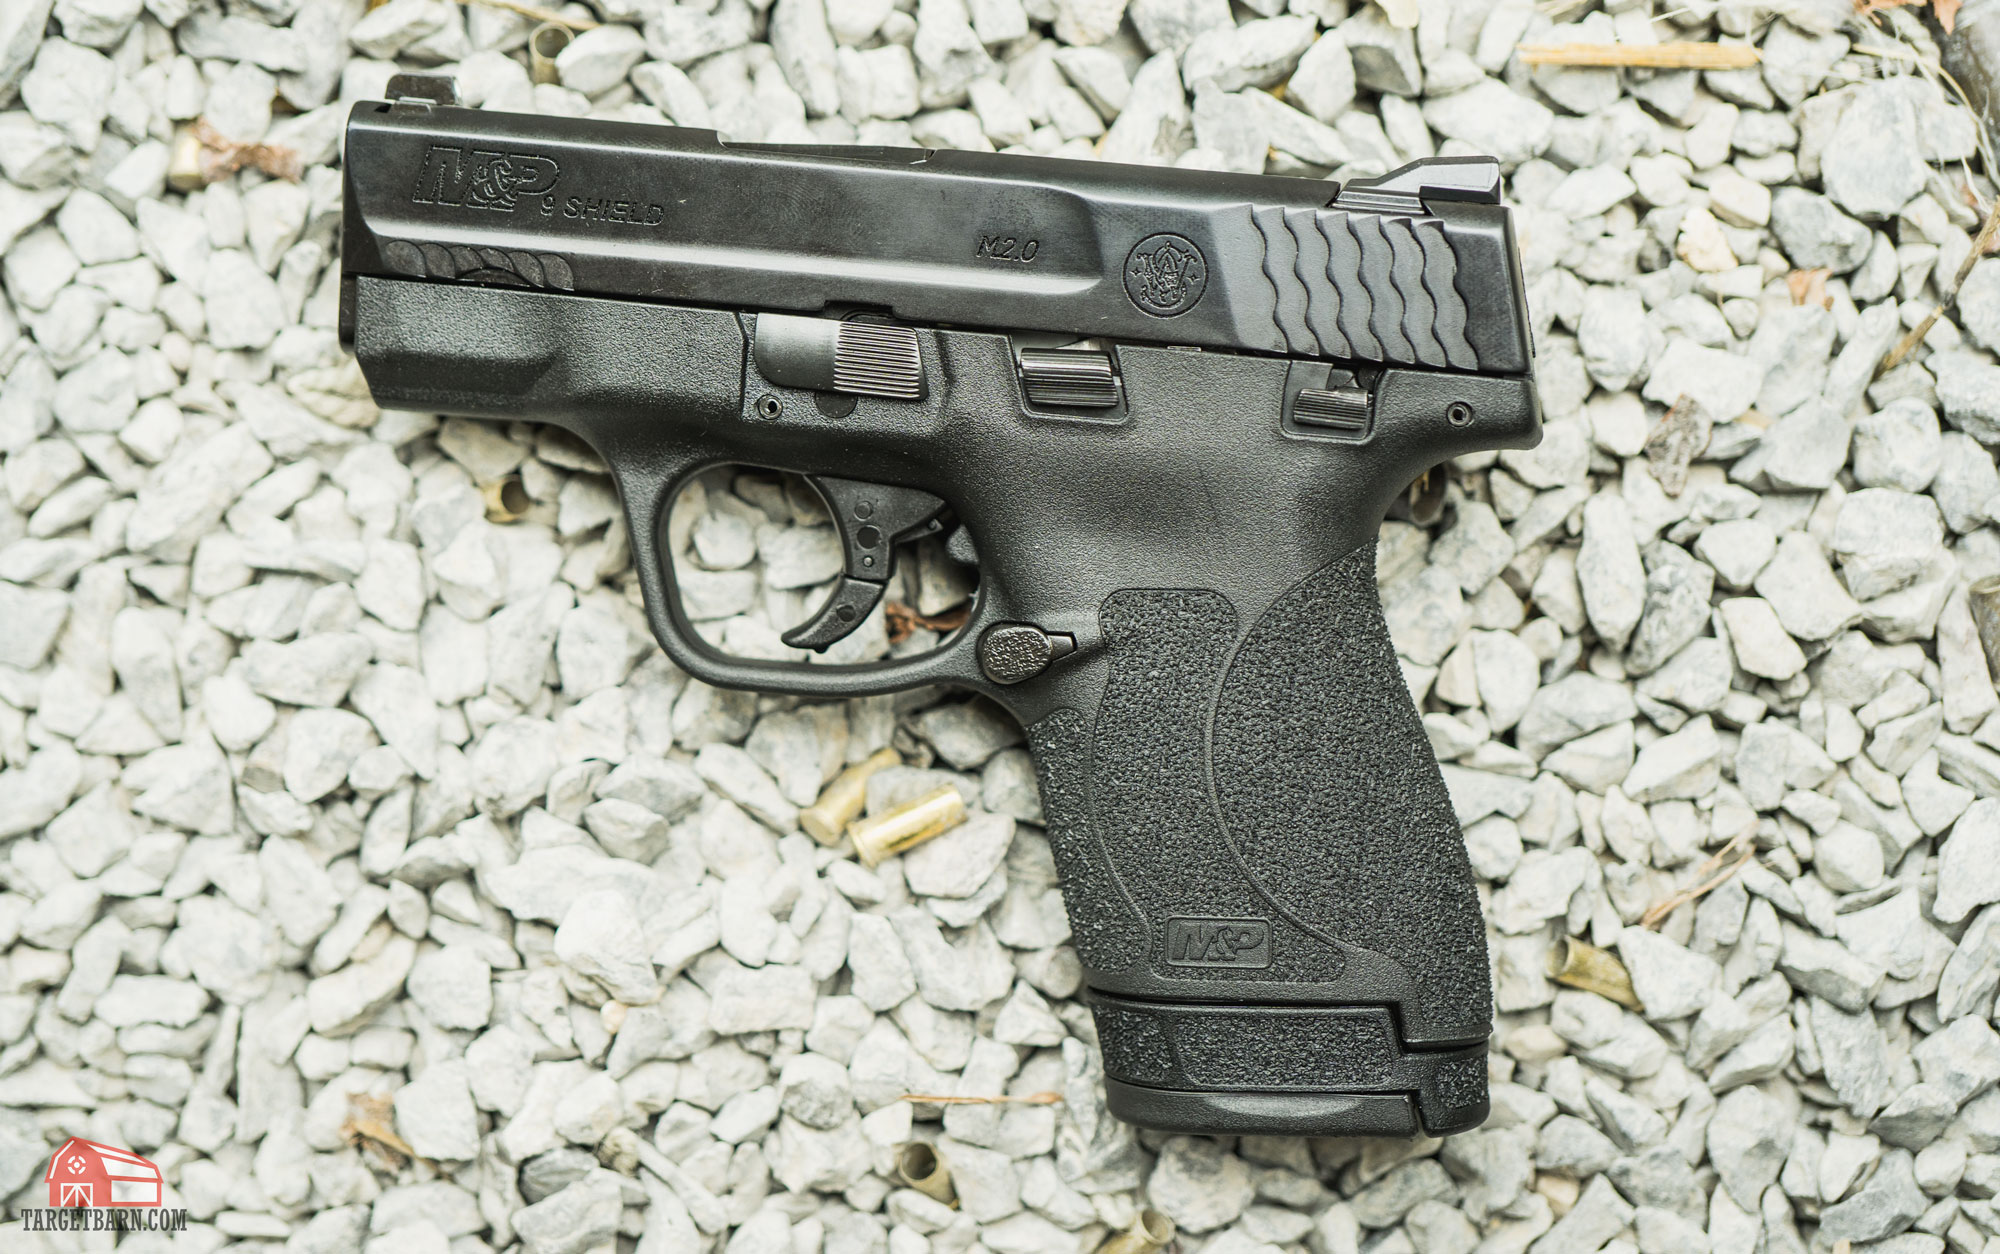 a s&w m&p shield for back up gun division